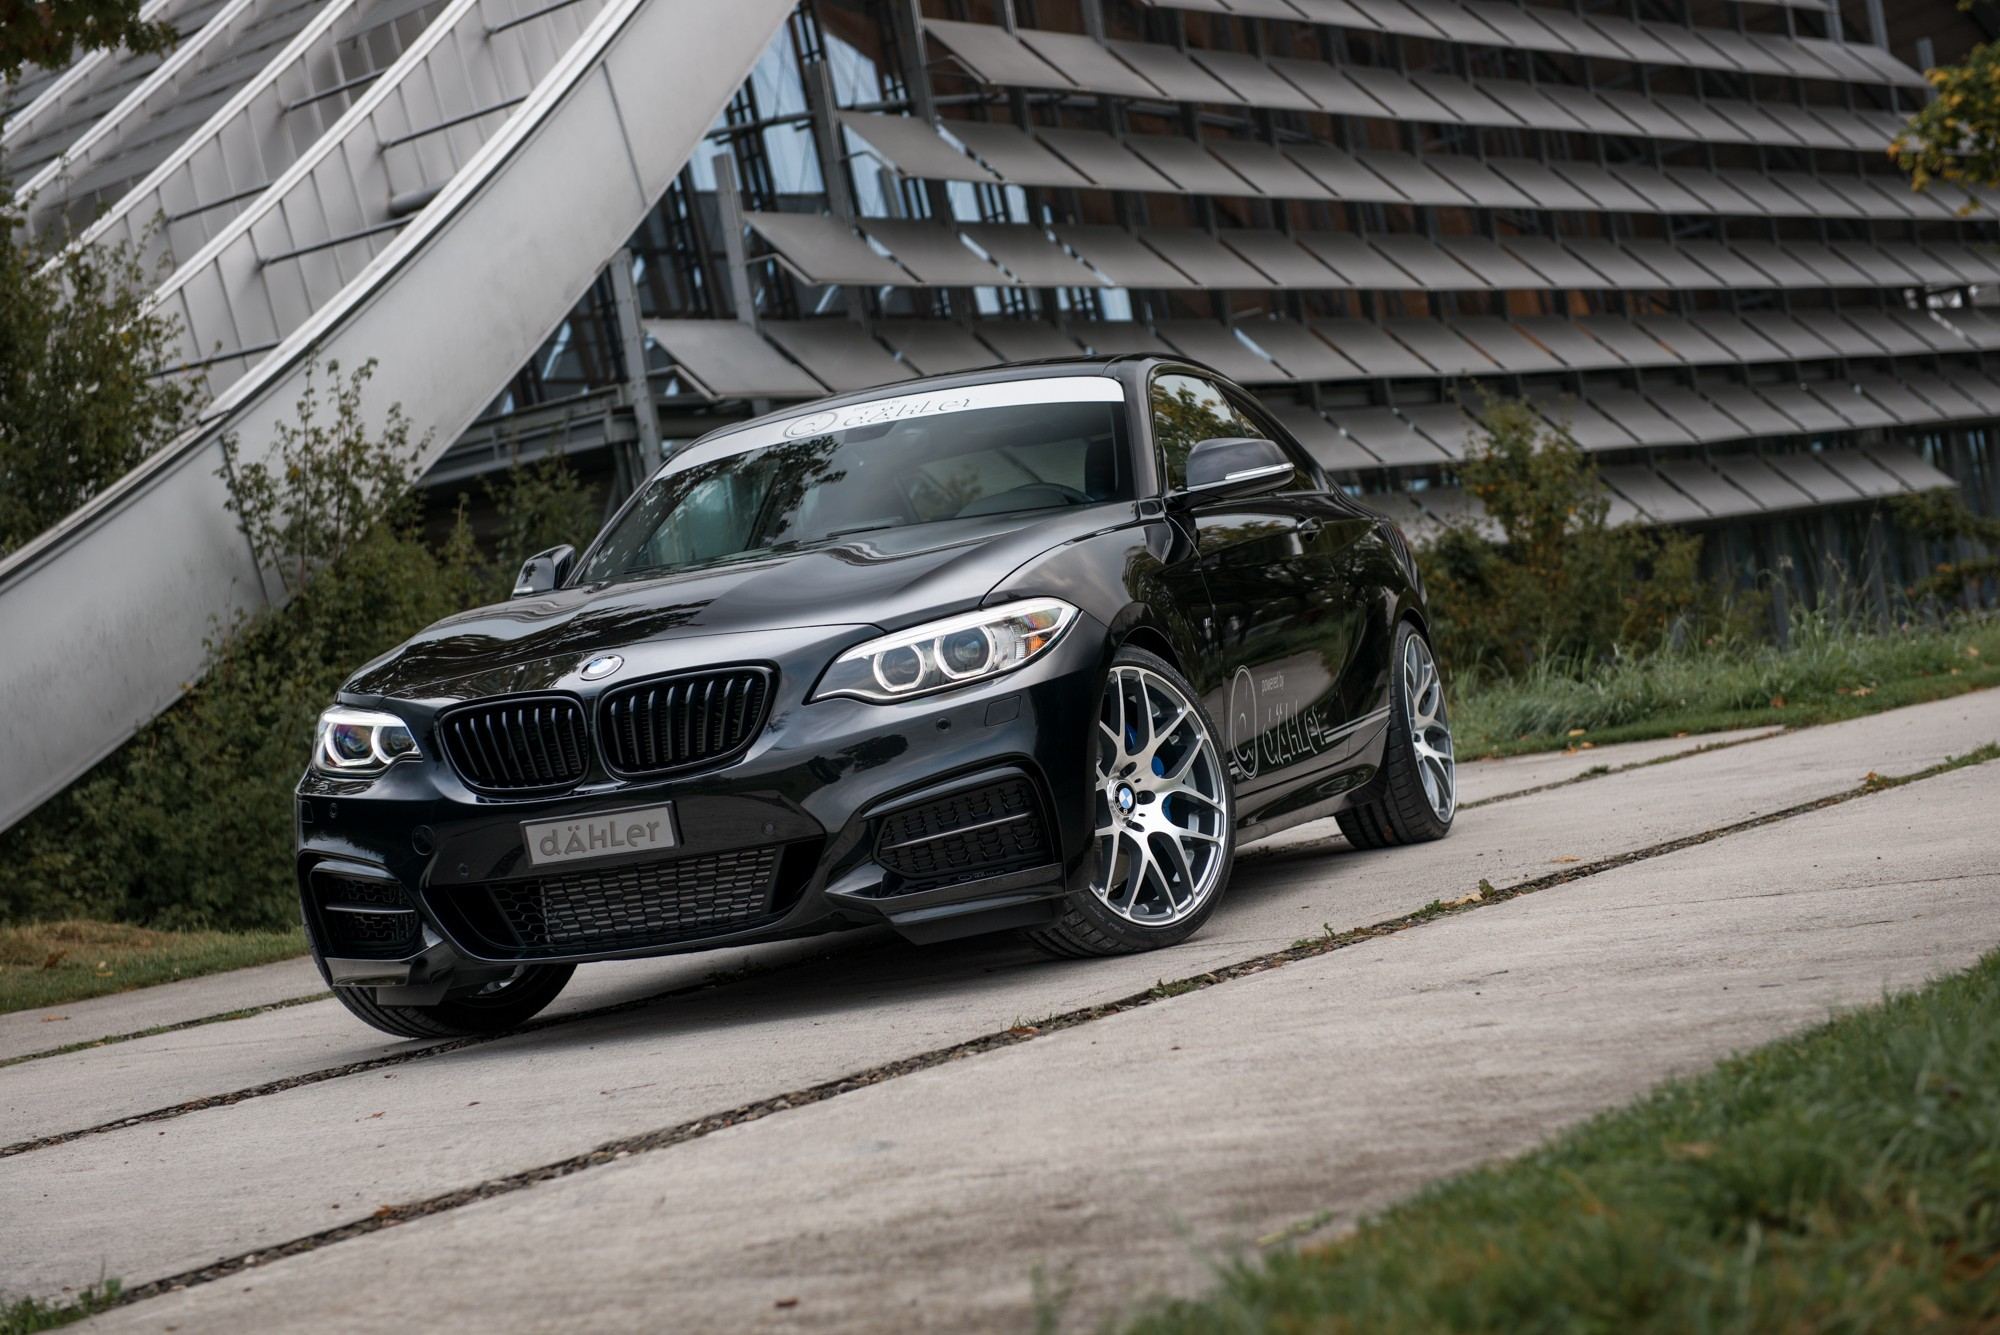 Daehler Tuned BMW M235i Makes 390 HP and Has M4 Rivaling